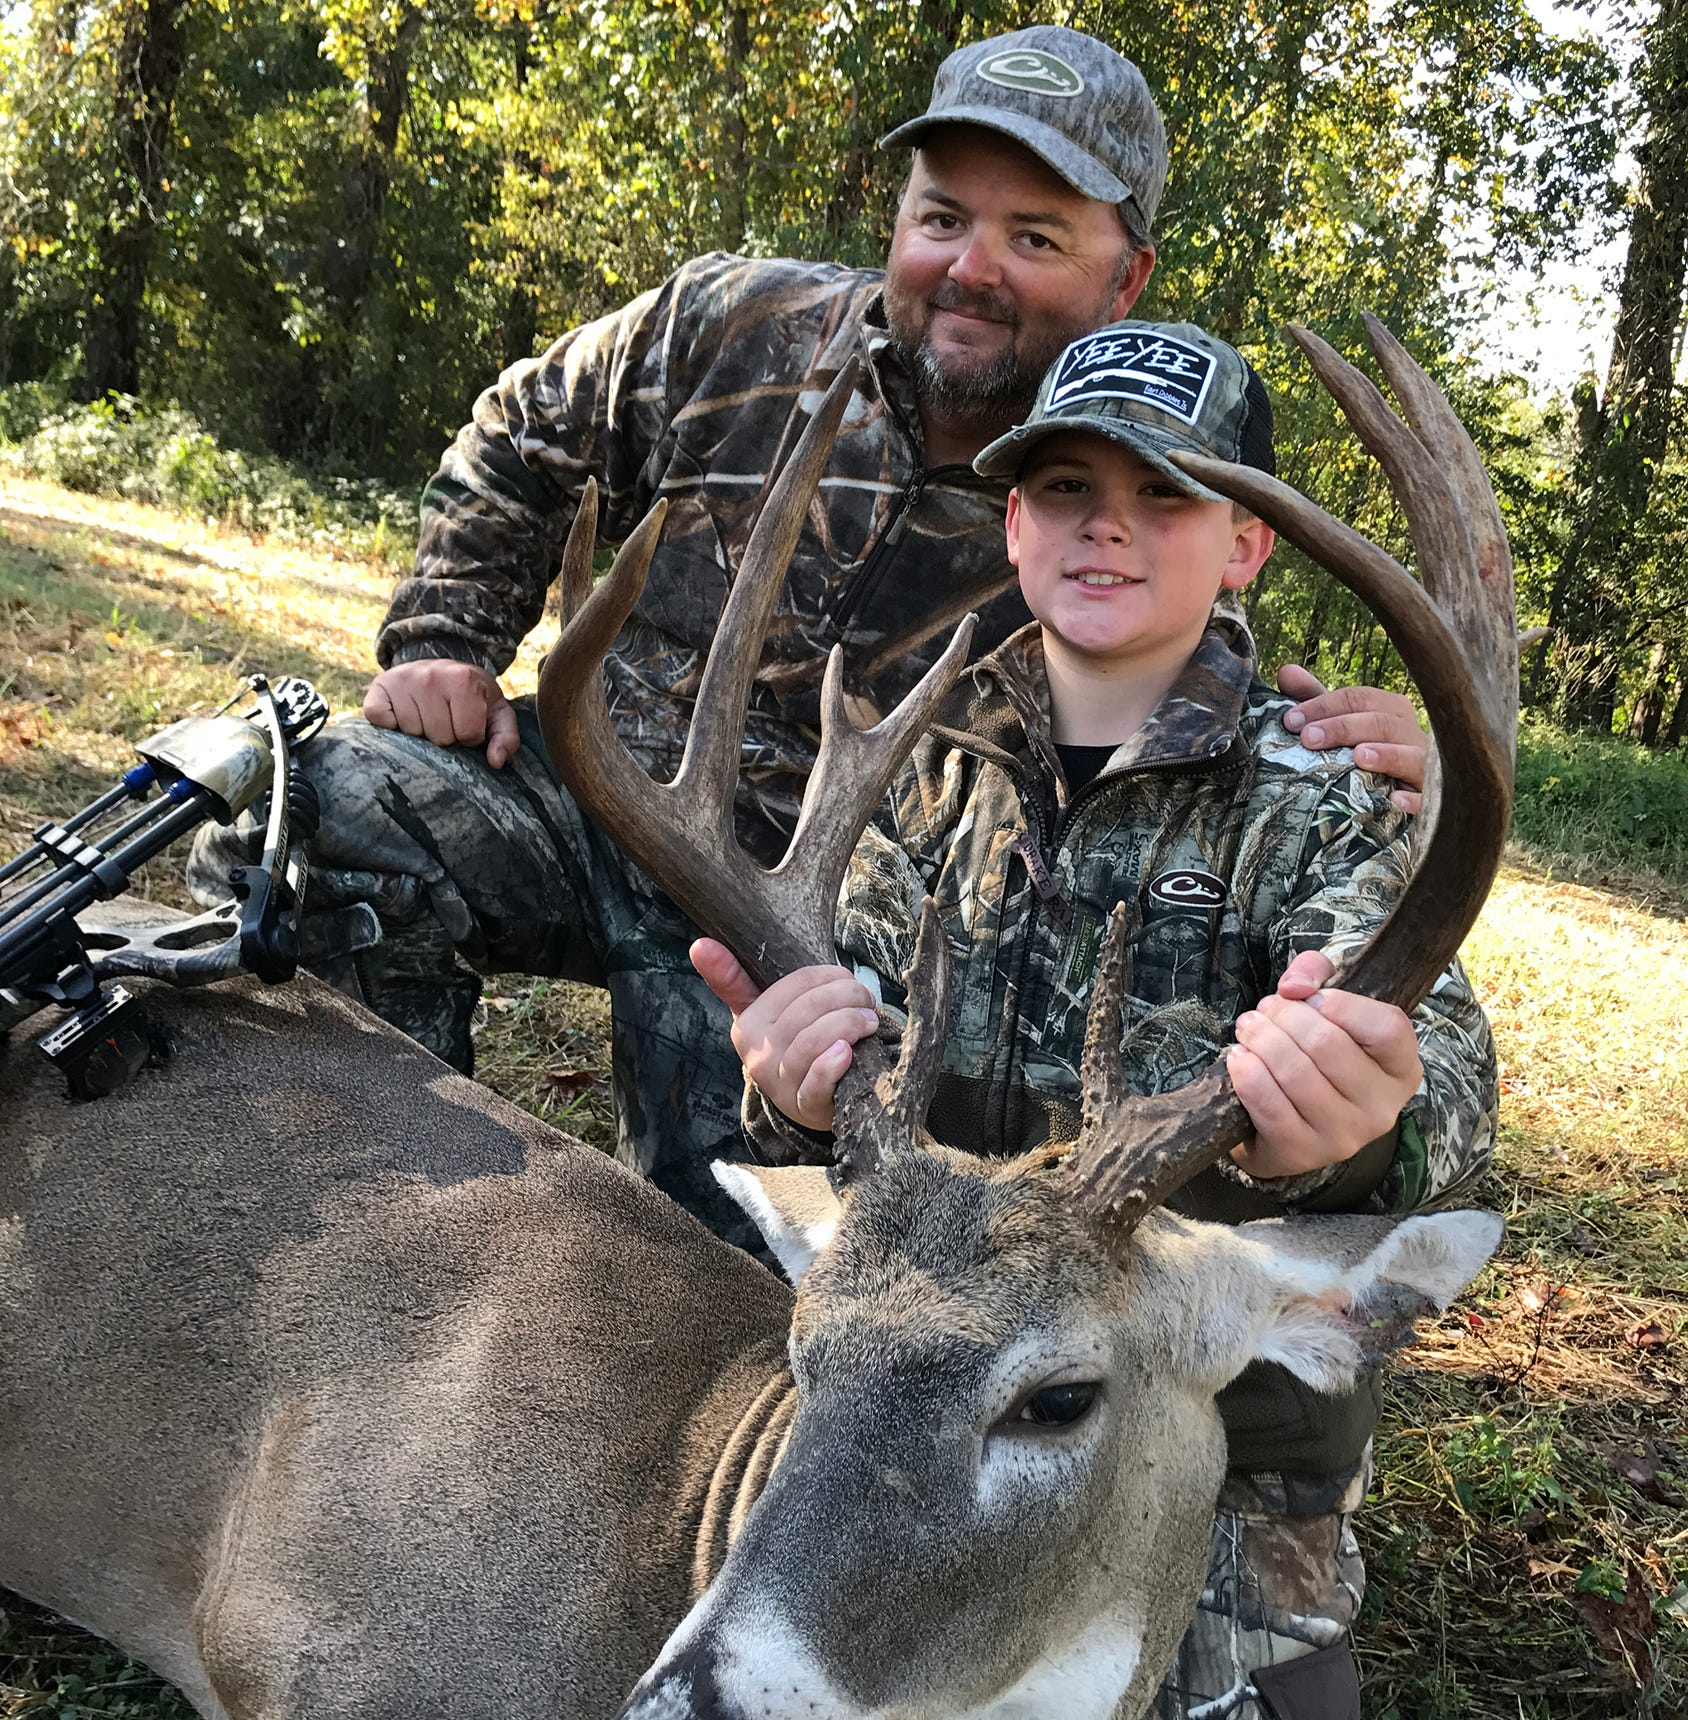 Your young hunter can win a Mission Craze II bow or prepaid debit cards in the Clarion Ledger Outdoors Youth Deer Hunter Photo Contest sponsored by B&B Archery.